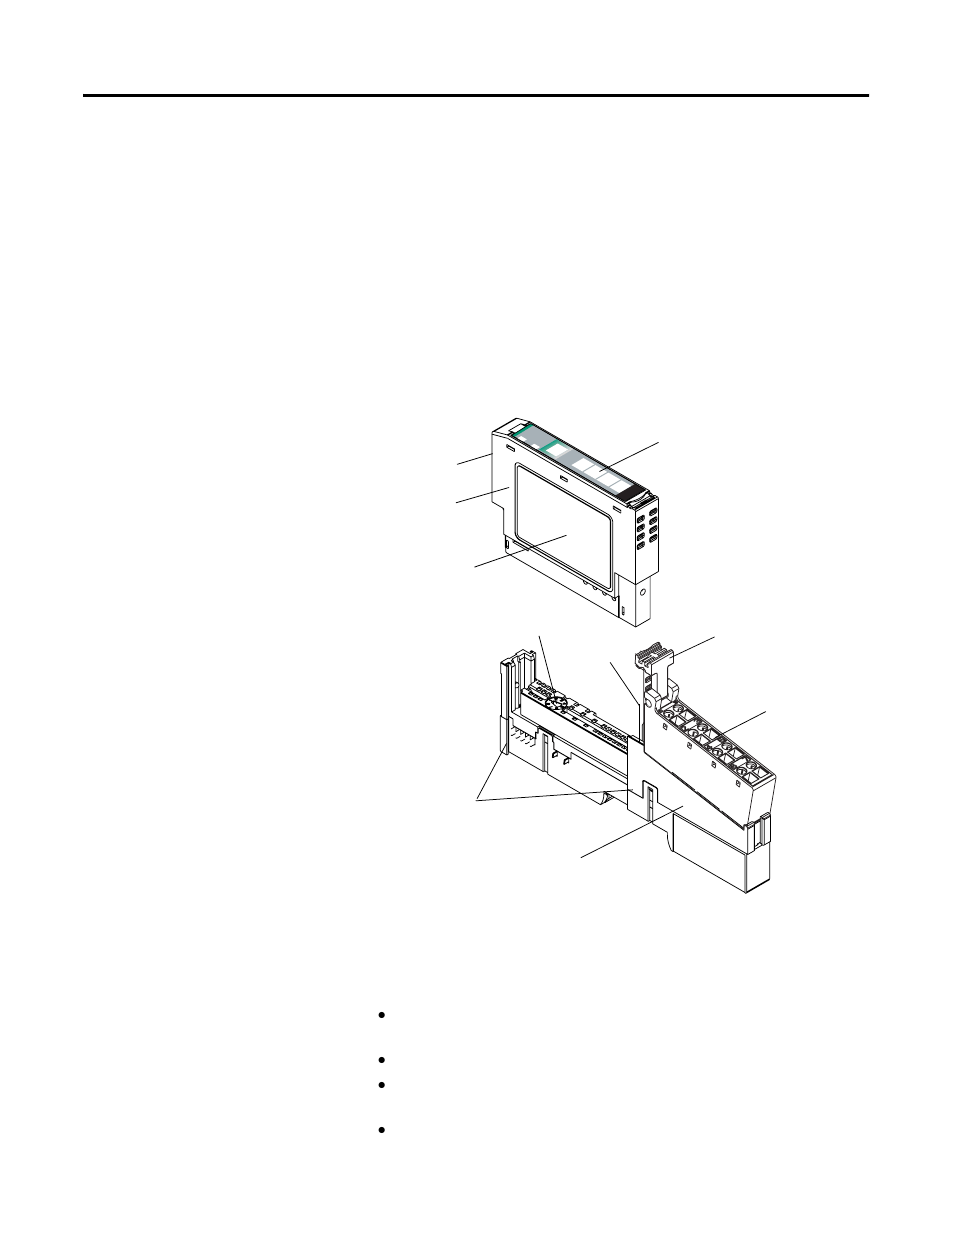 hight resolution of  about the module rockwell automation 1734 ssi point i o synchronous serial interface absolute encoder module user manual user manual page 9 53